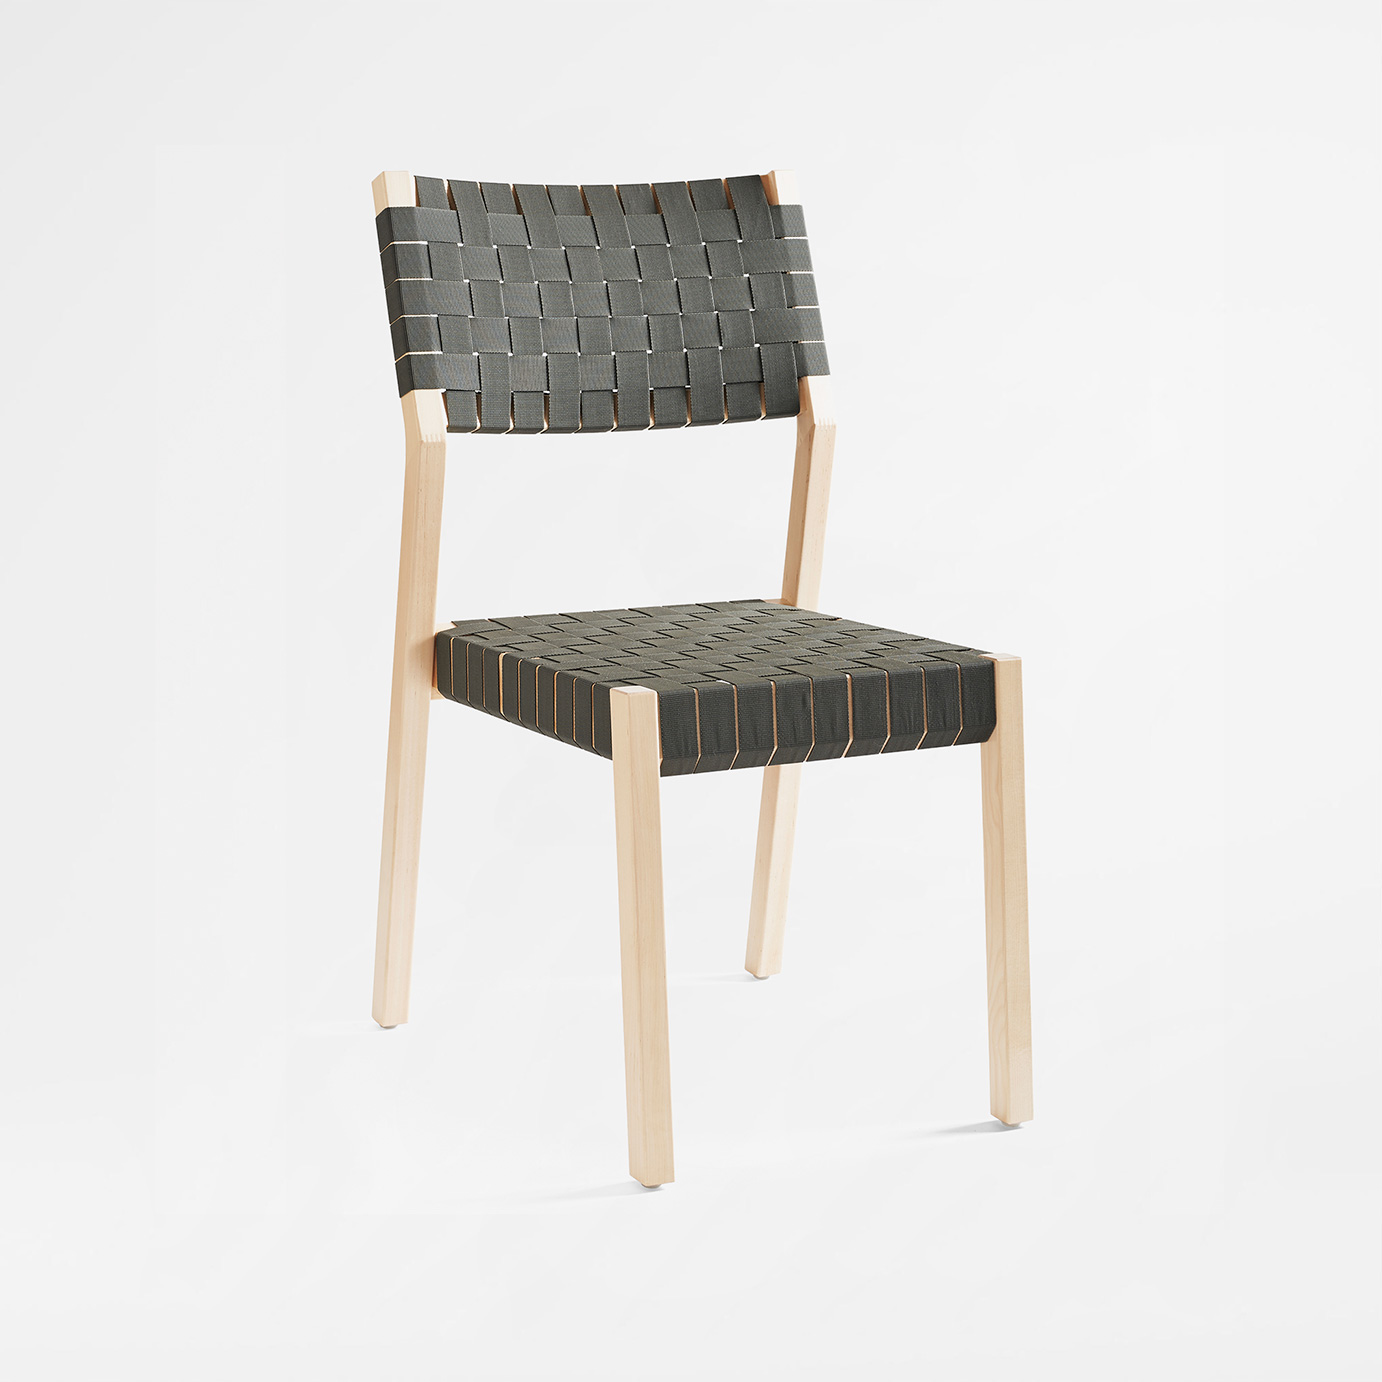 Alvastra chair